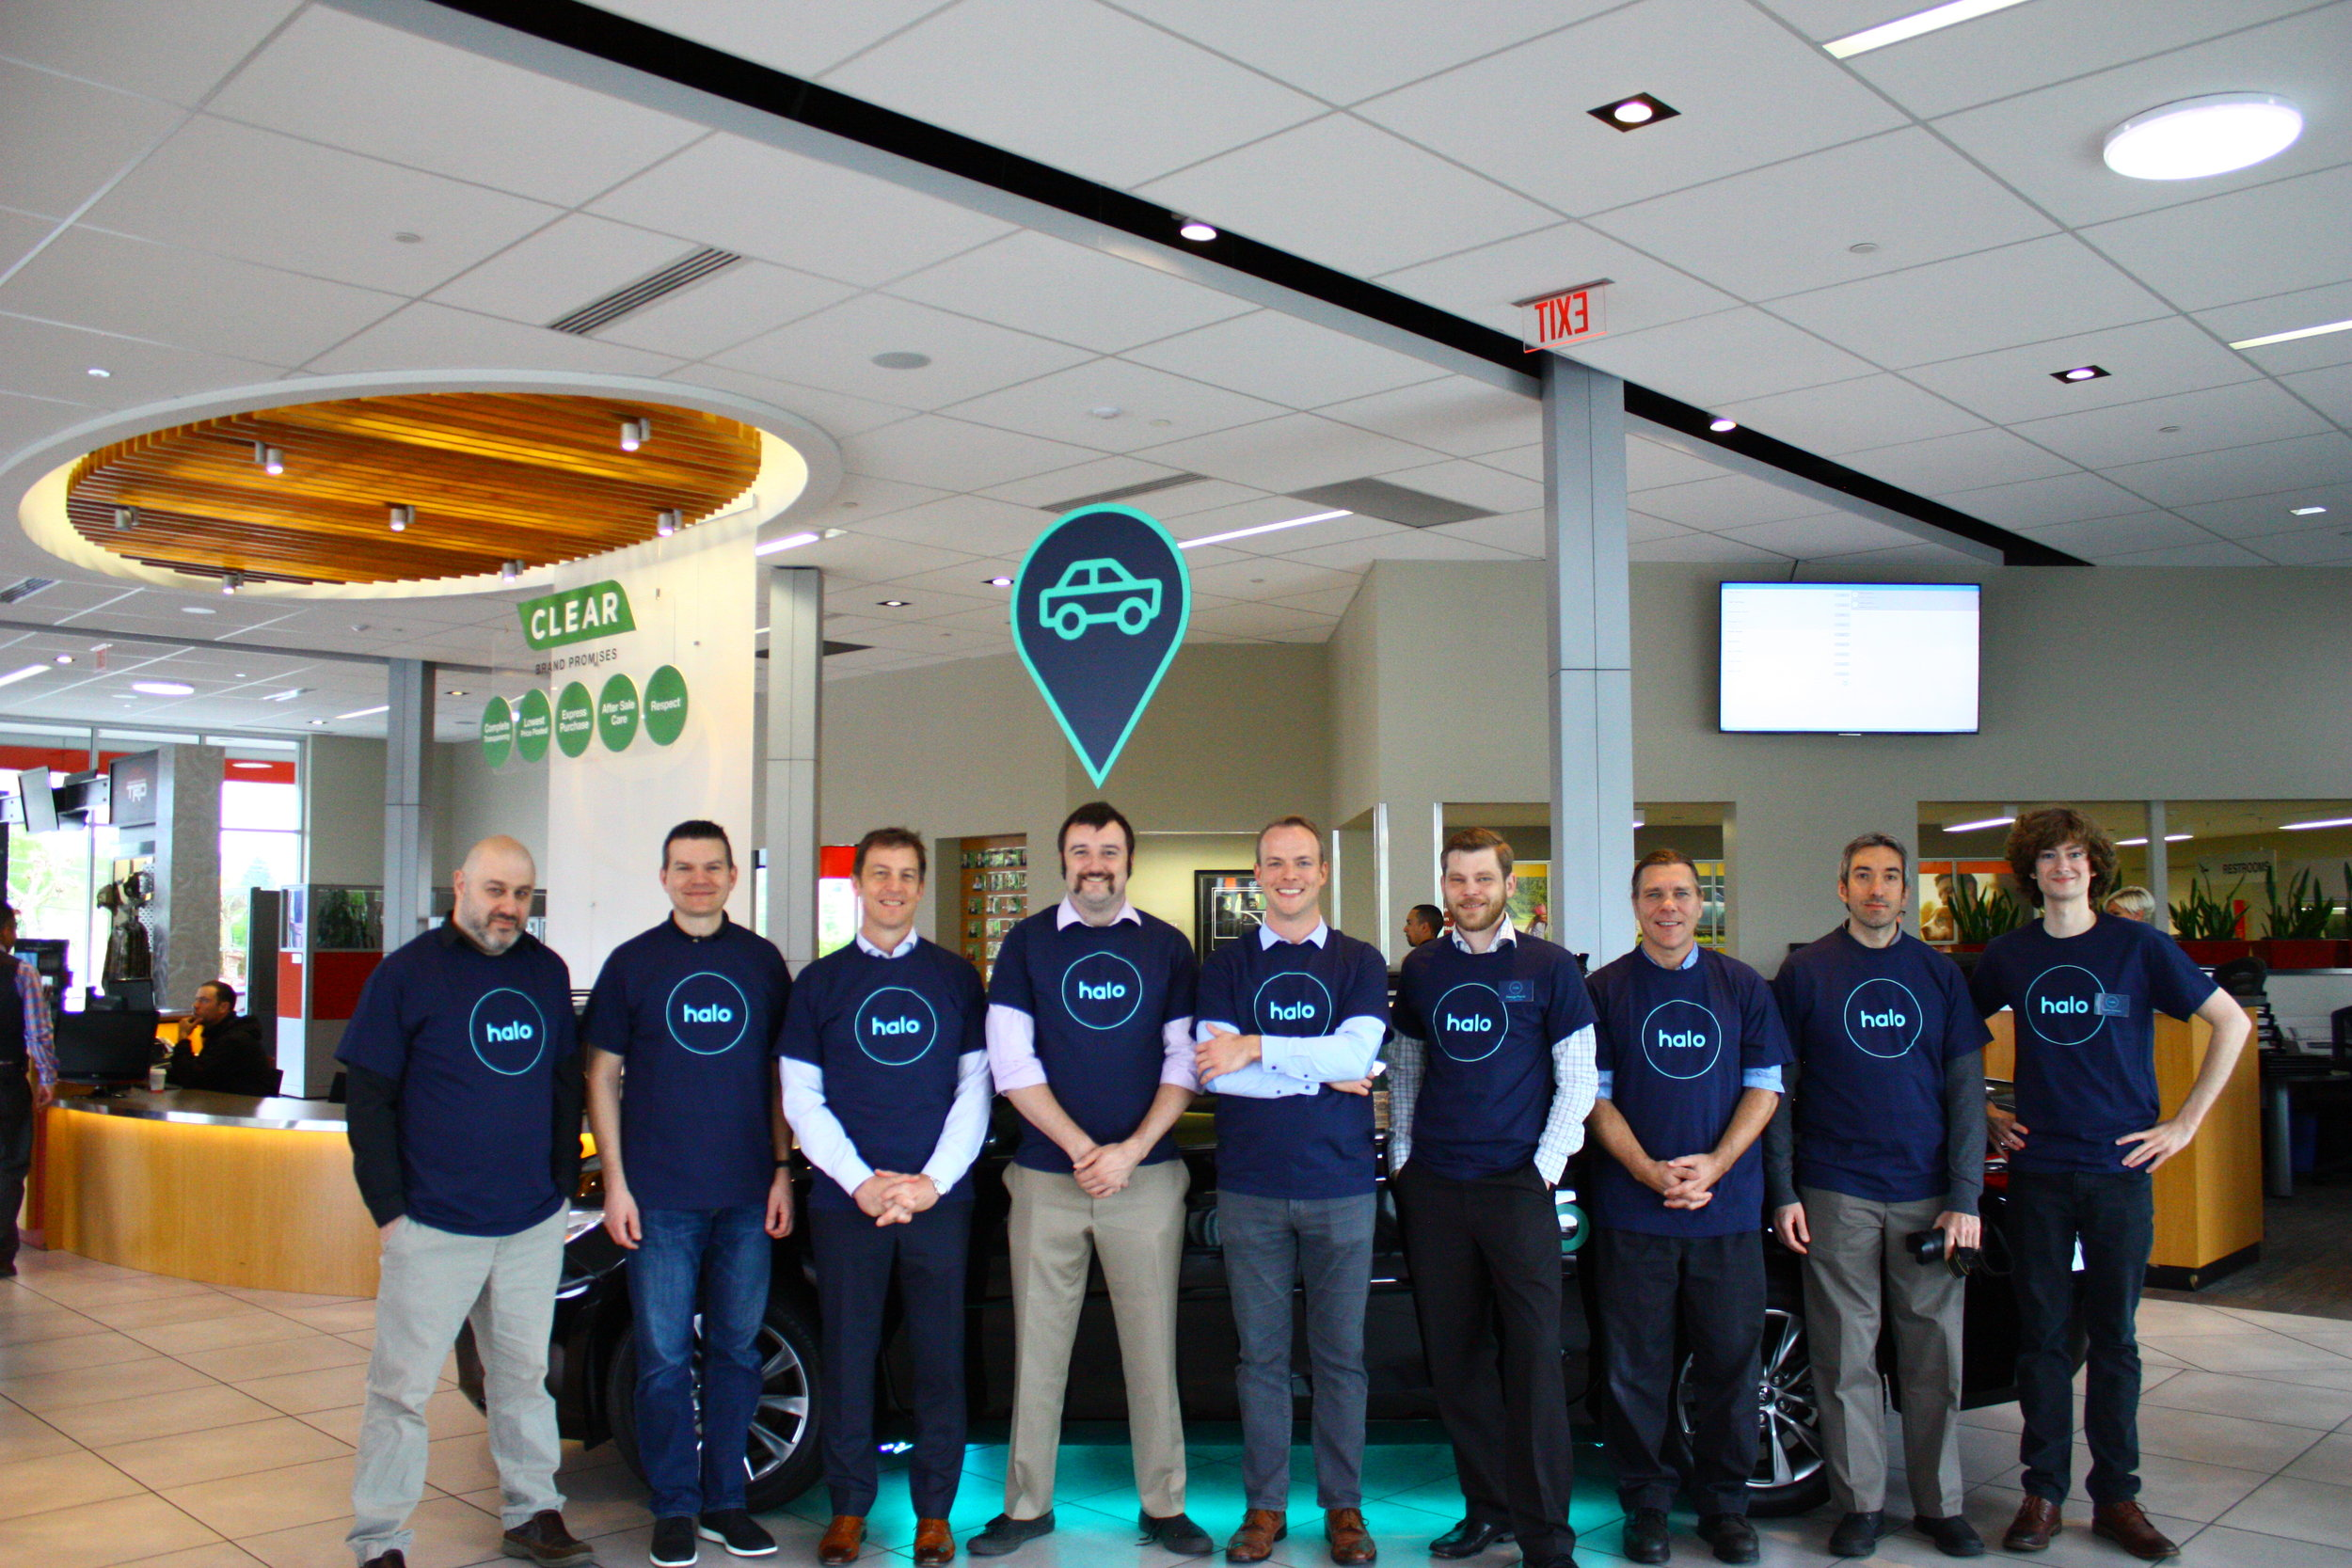 The results were incredible ($250,000 top-line revenue first quarter) and all of our creative led to a palpable energy that transferred to everyone in the dealership. We officially launched Halo.